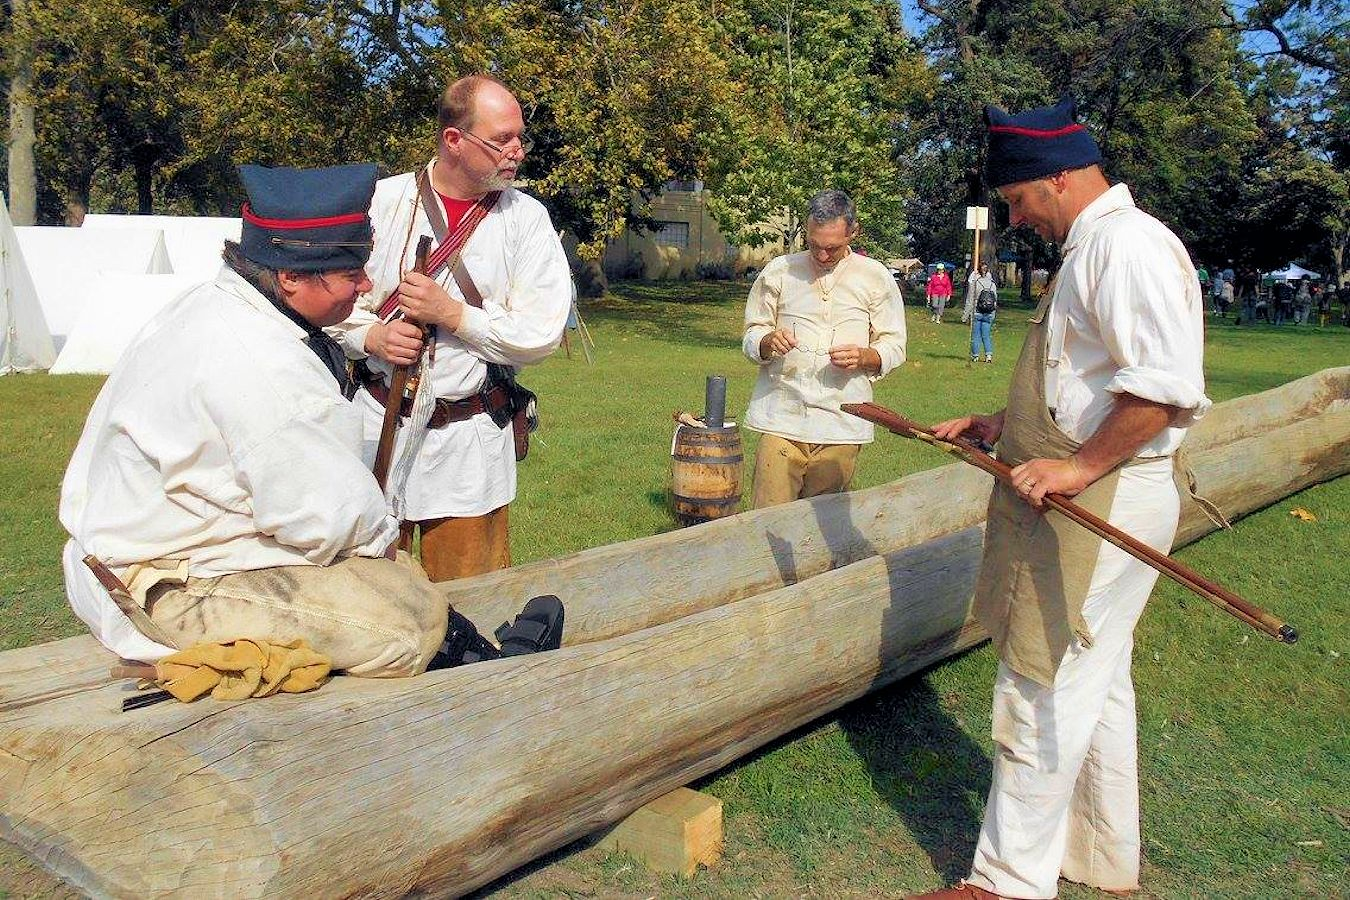 Sacajawea Heritage Days - Sacajawea State Park in Pasco, Washington